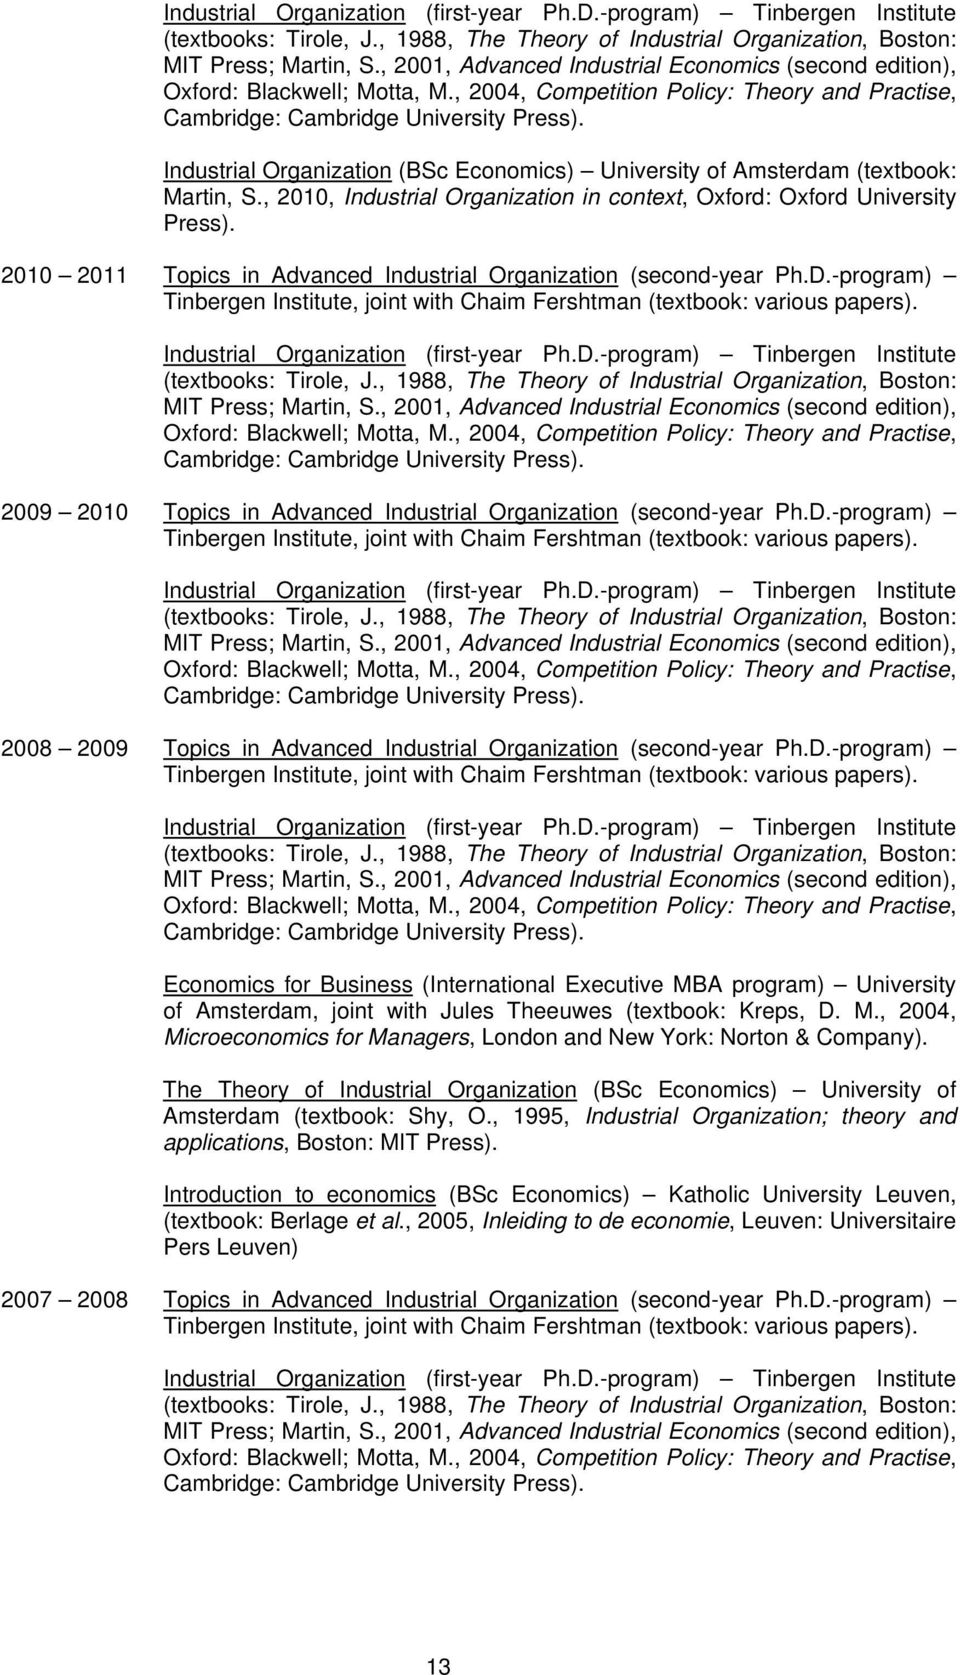 2010 2011 Topics in Advanced Industrial Organization (second-year Ph.D.-program)  2009 2010 Topics in Advanced Industrial Organization (second-year Ph.D.-program)  2008 2009 Topics in Advanced Industrial Organization (second-year Ph.